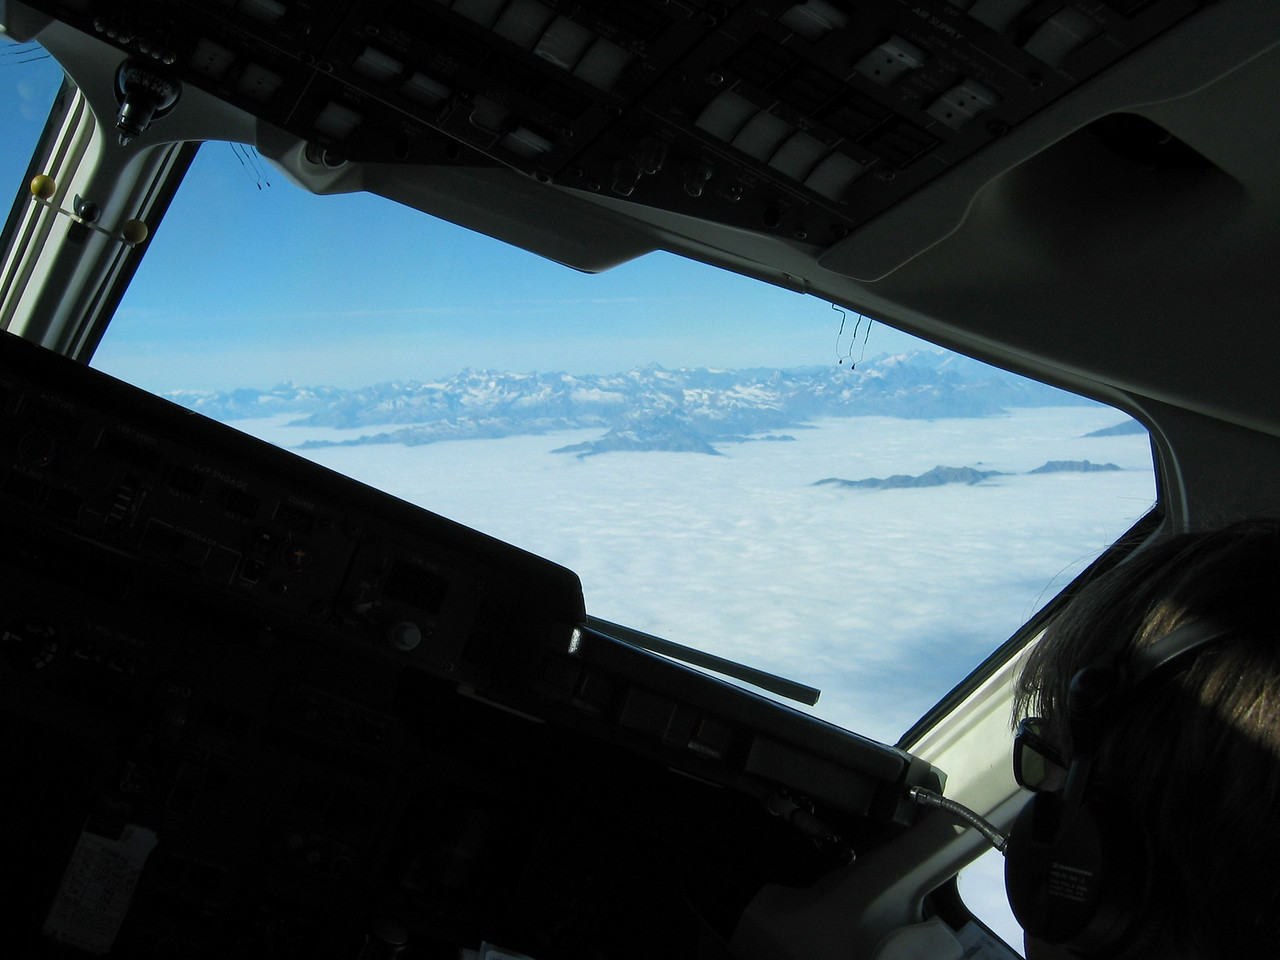 Banking towards the Alps, North of Italy. RJ85.